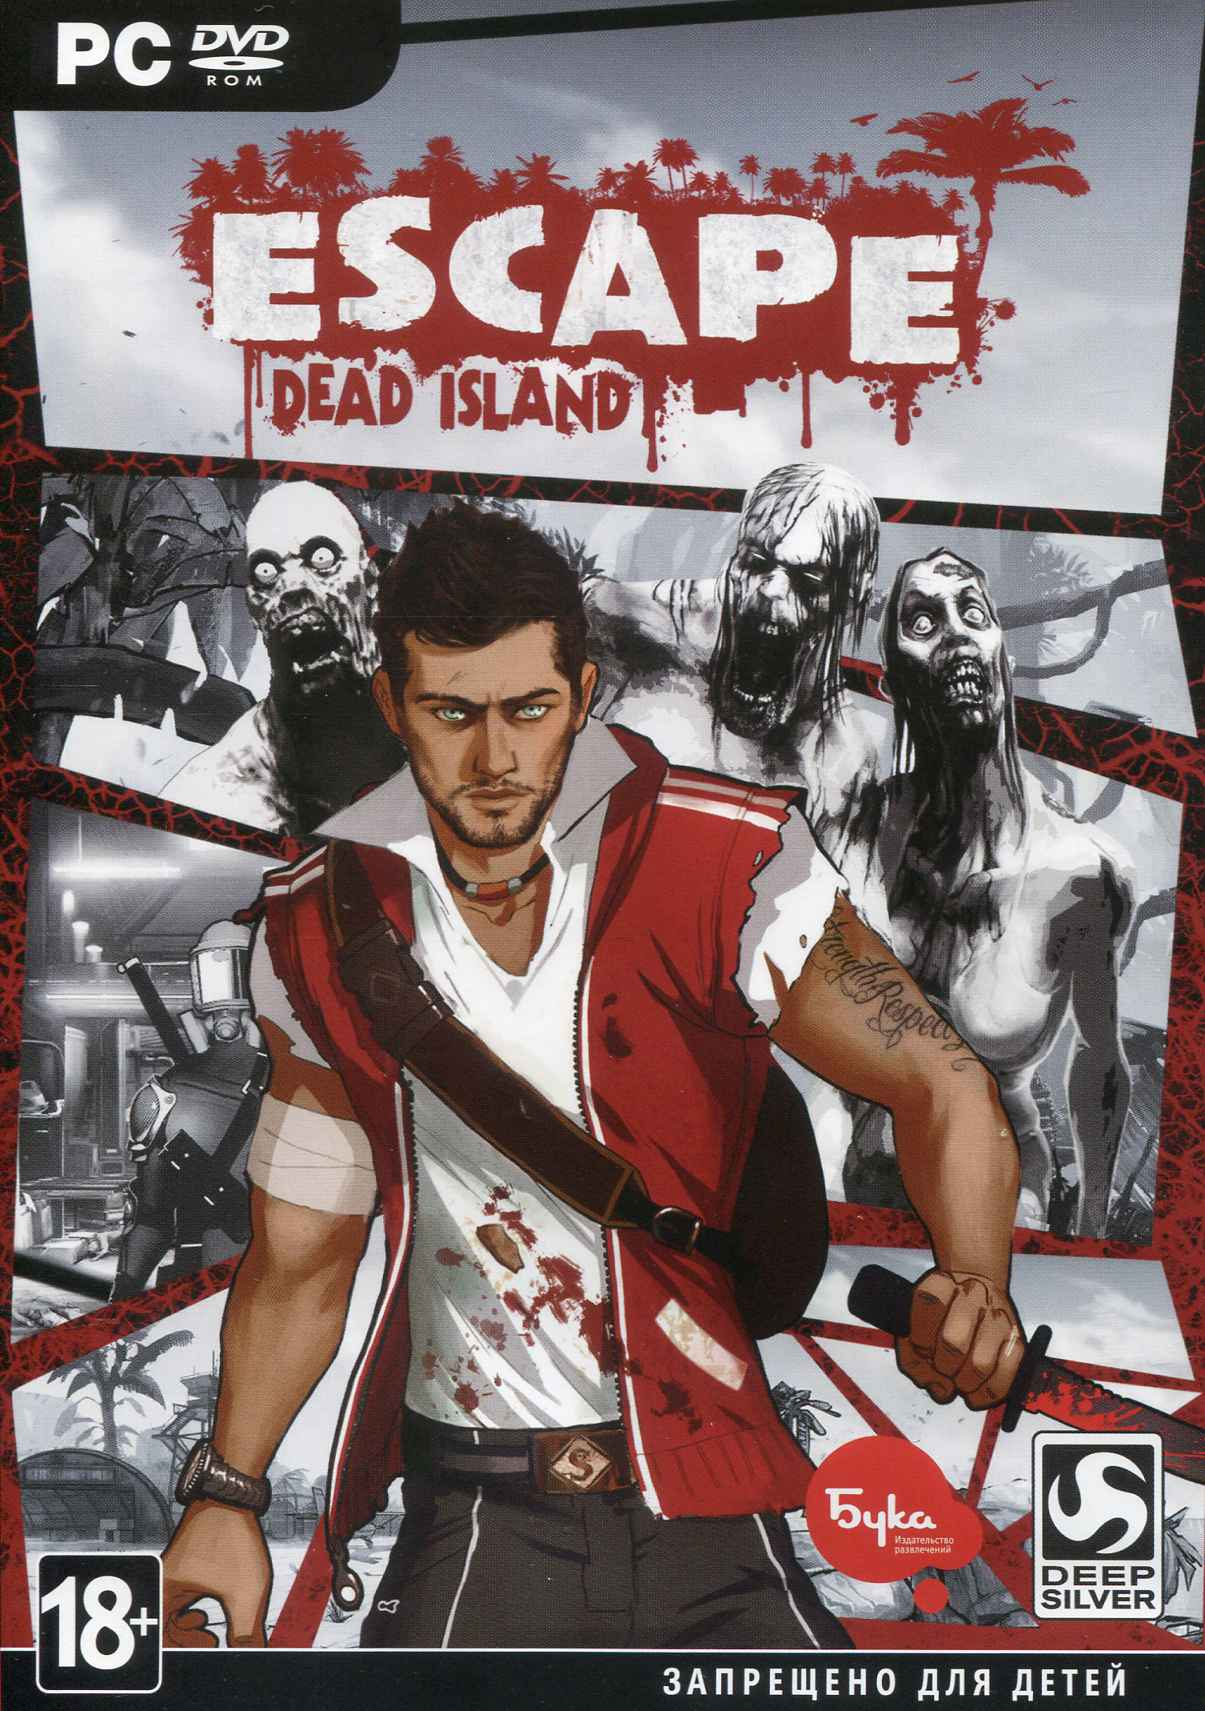 Escape Dead Island (activation key in Steam)